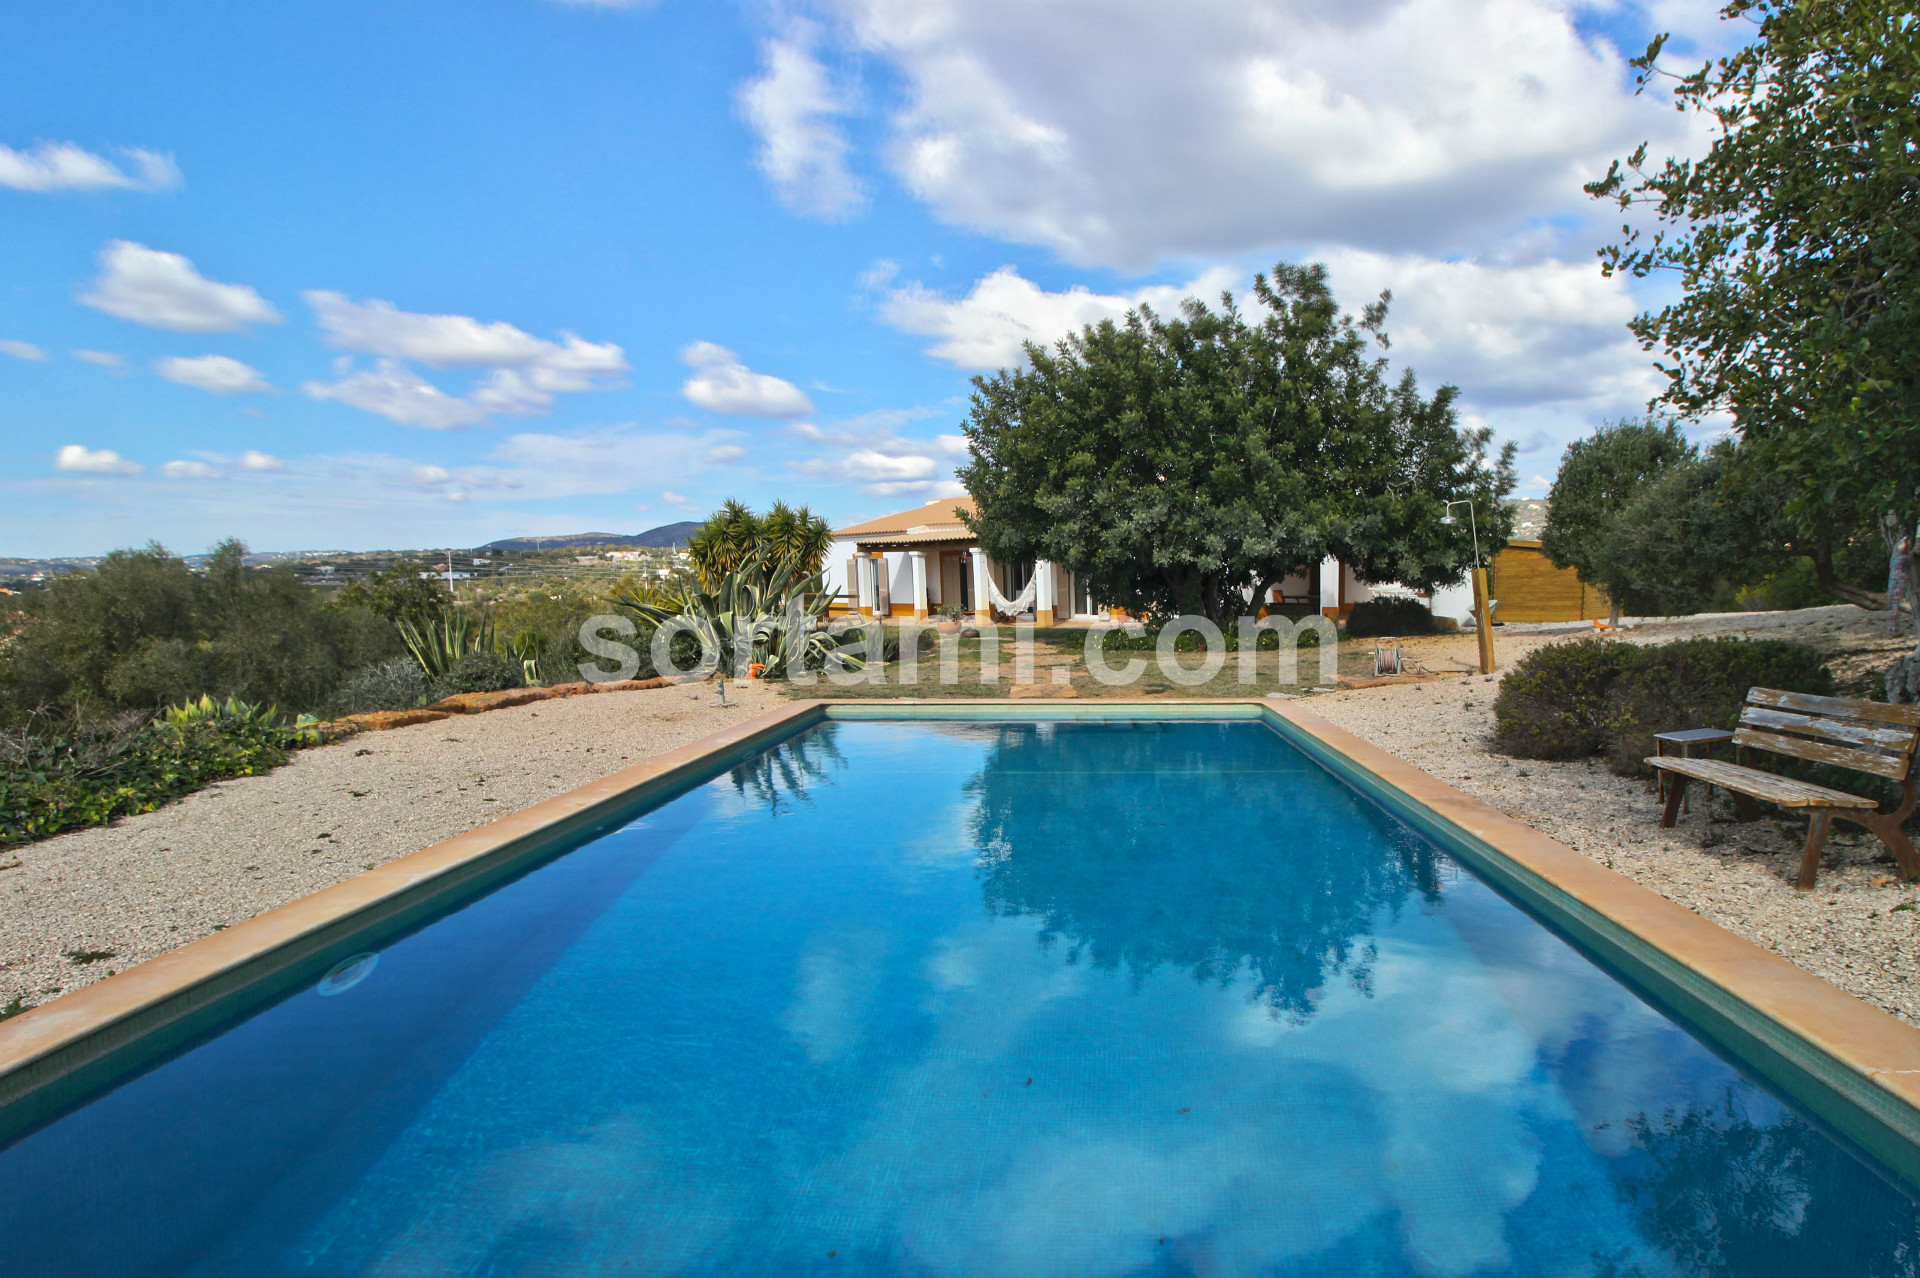 Detached house T3, Algarve, Faro